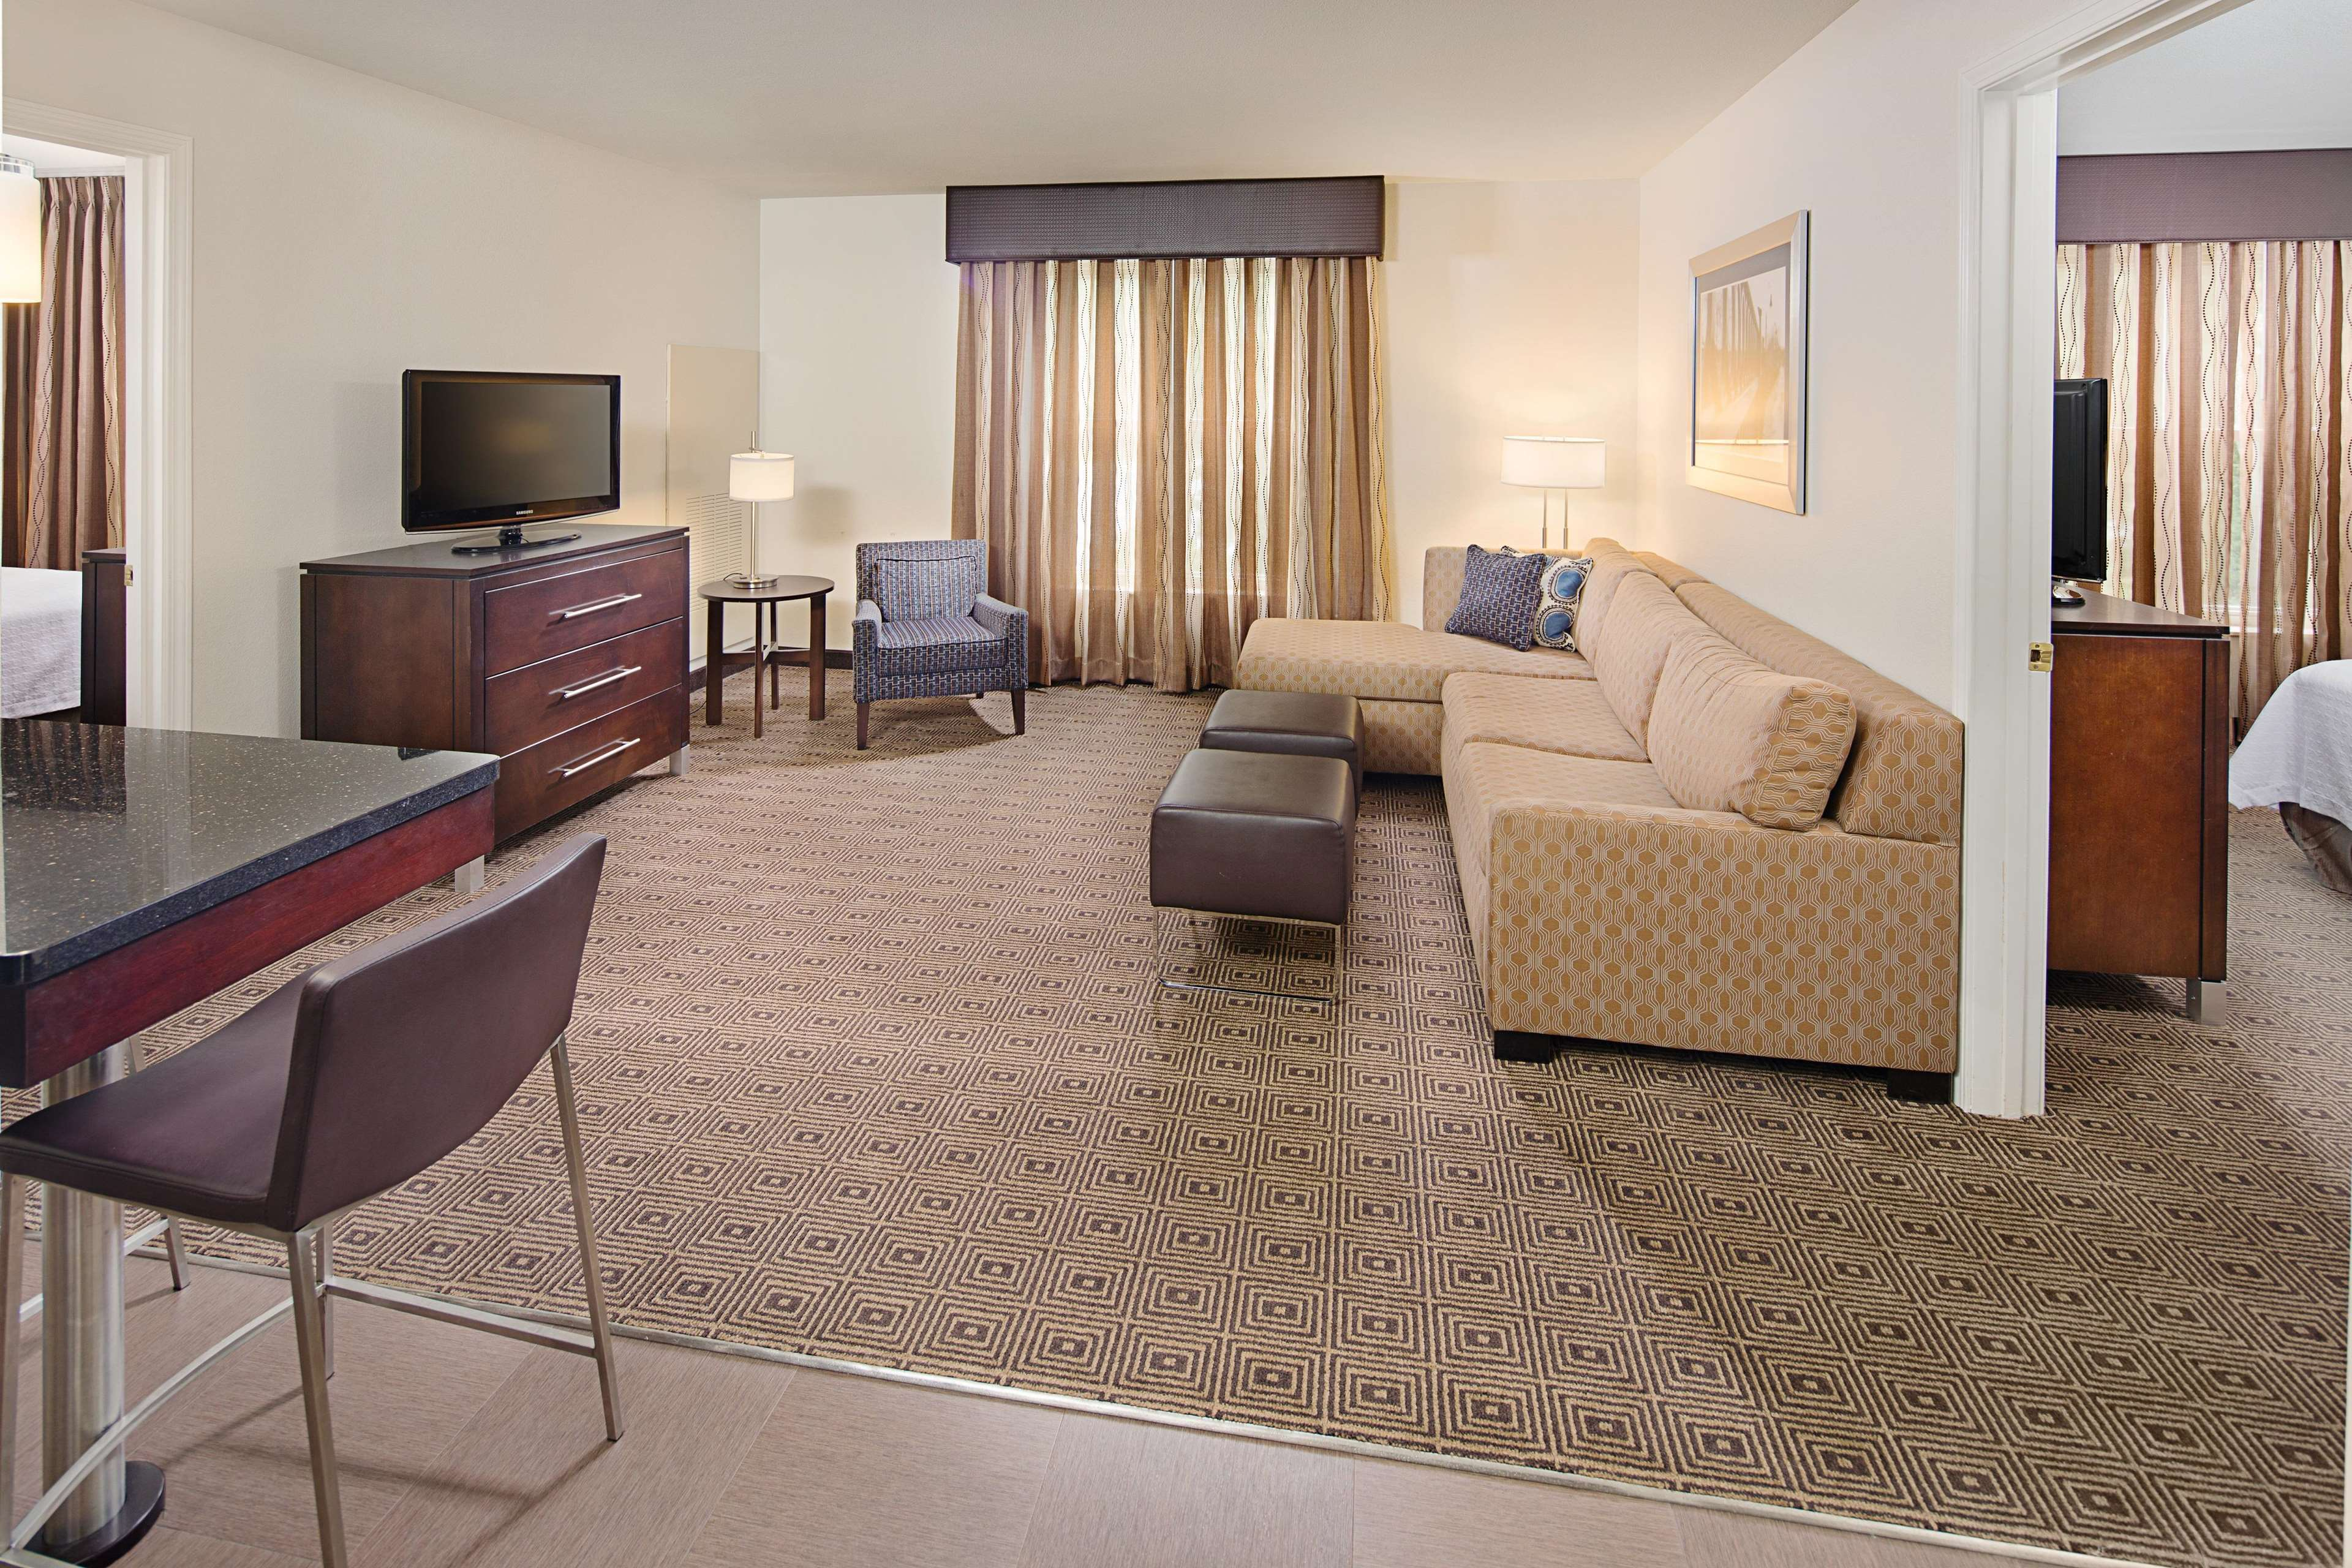 Homewood Suites by Hilton Manchester/Airport image 14